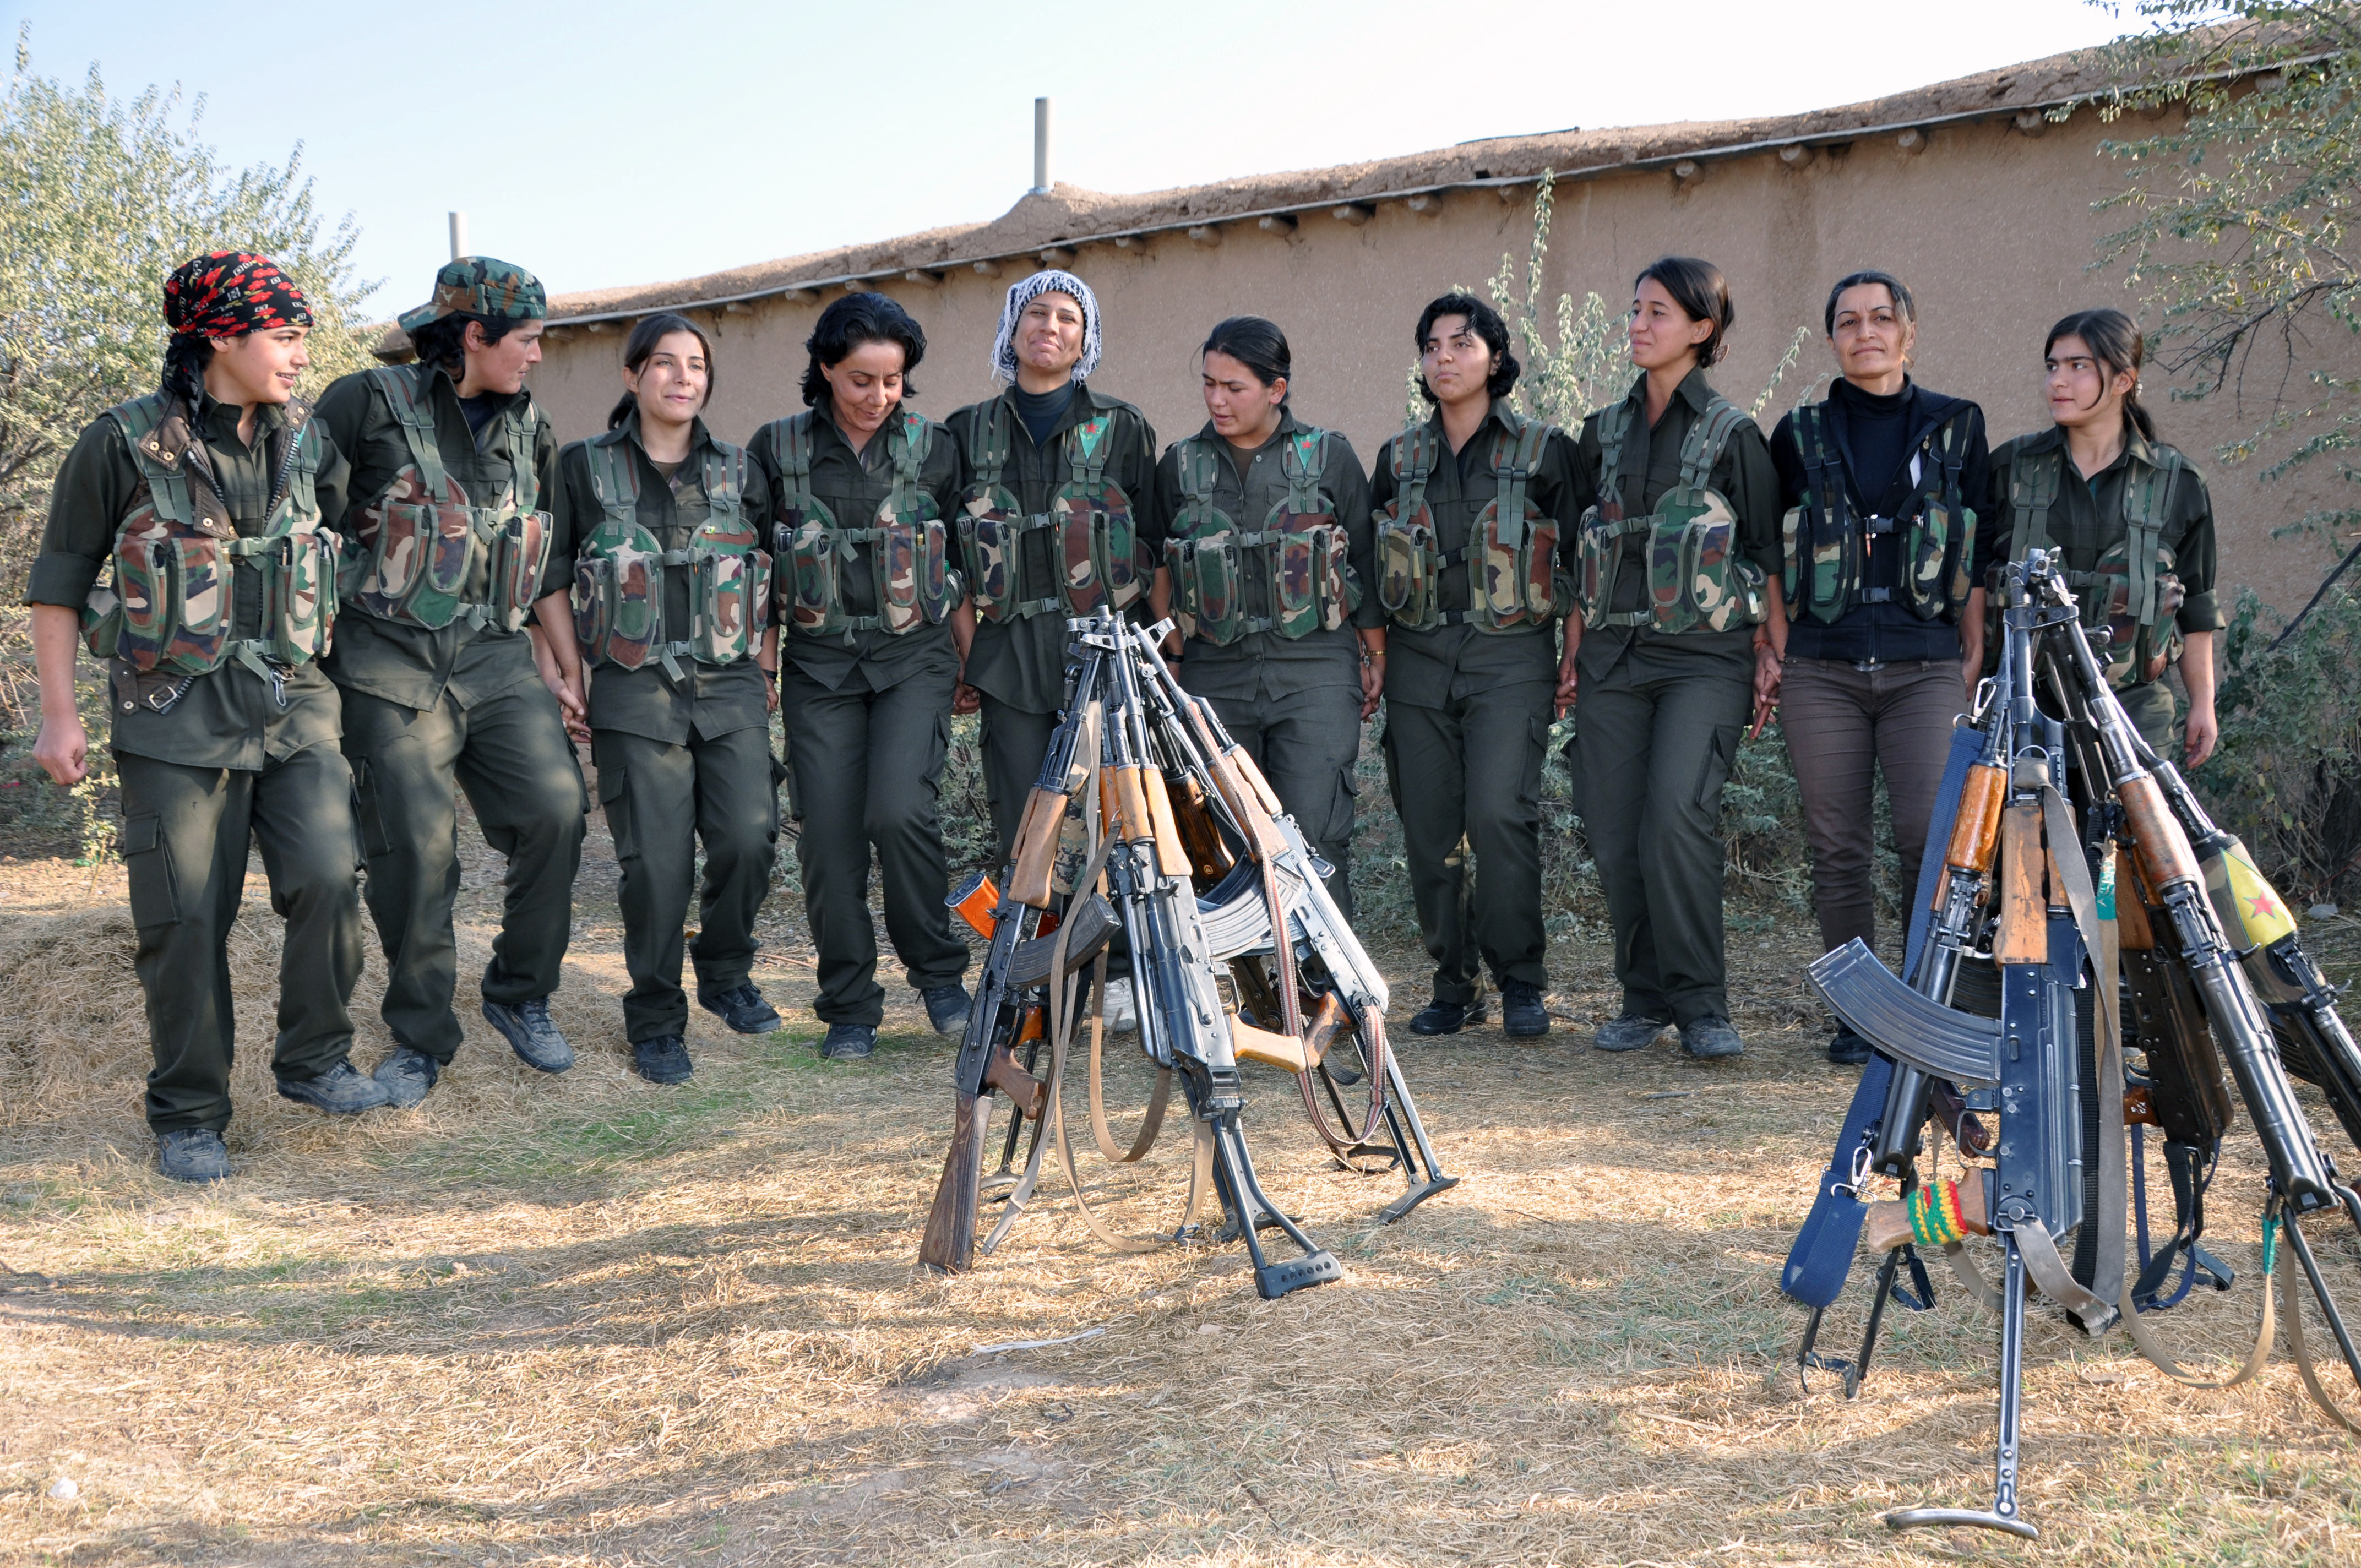 """5.Before leaving to join the front line, YPJ groups sing and dance together to keep up morale and they did just that before they left for the """"Liberation Operation of Tirbespiye Villages."""""""